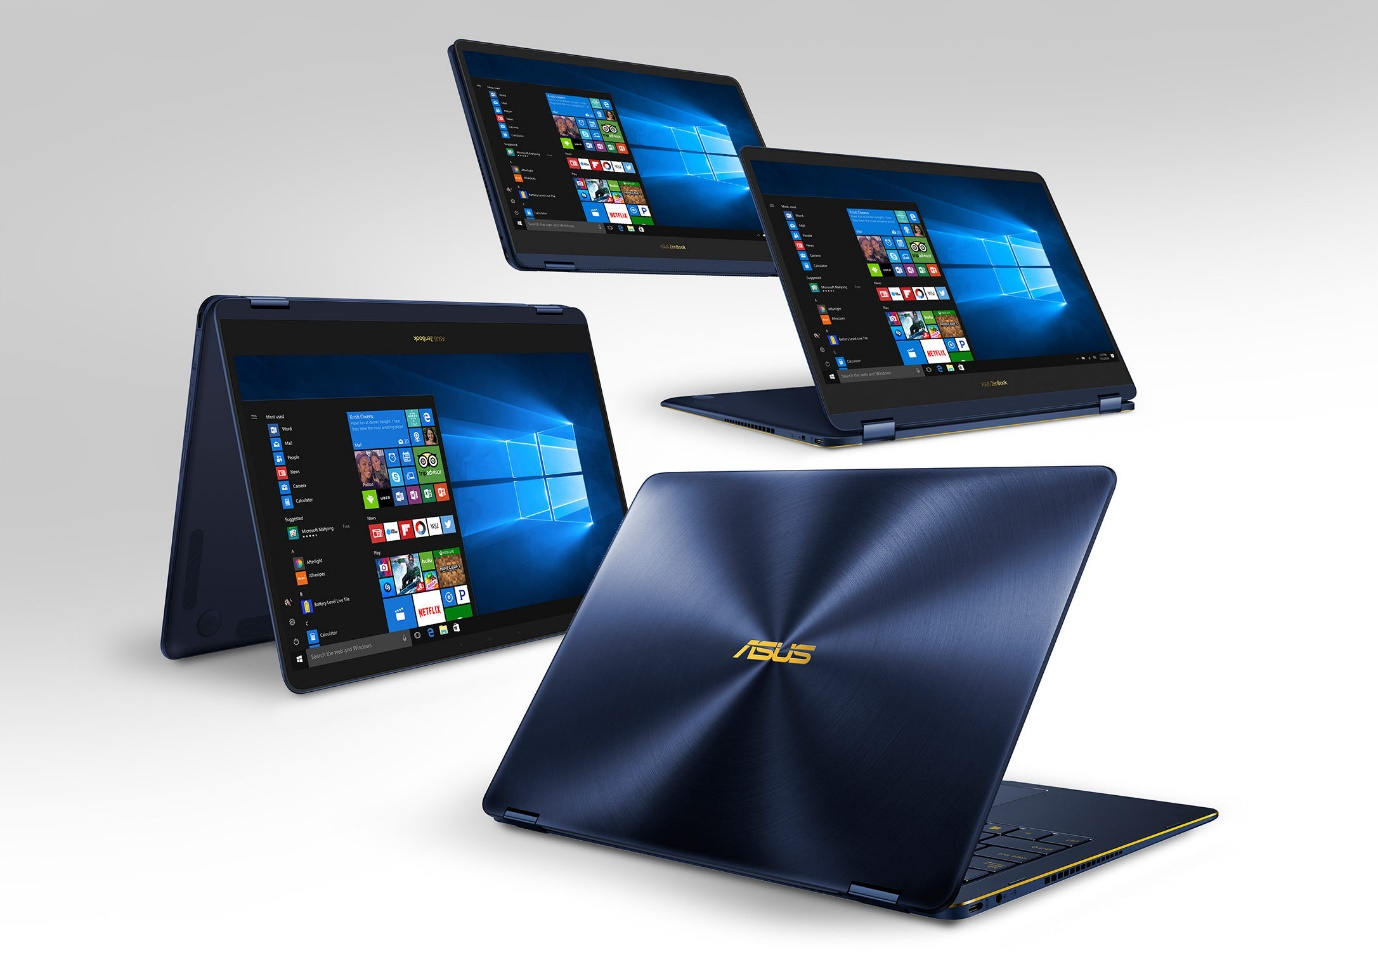 Asus ZenBook Flip S review – the Most Demandable Laptop for Today!